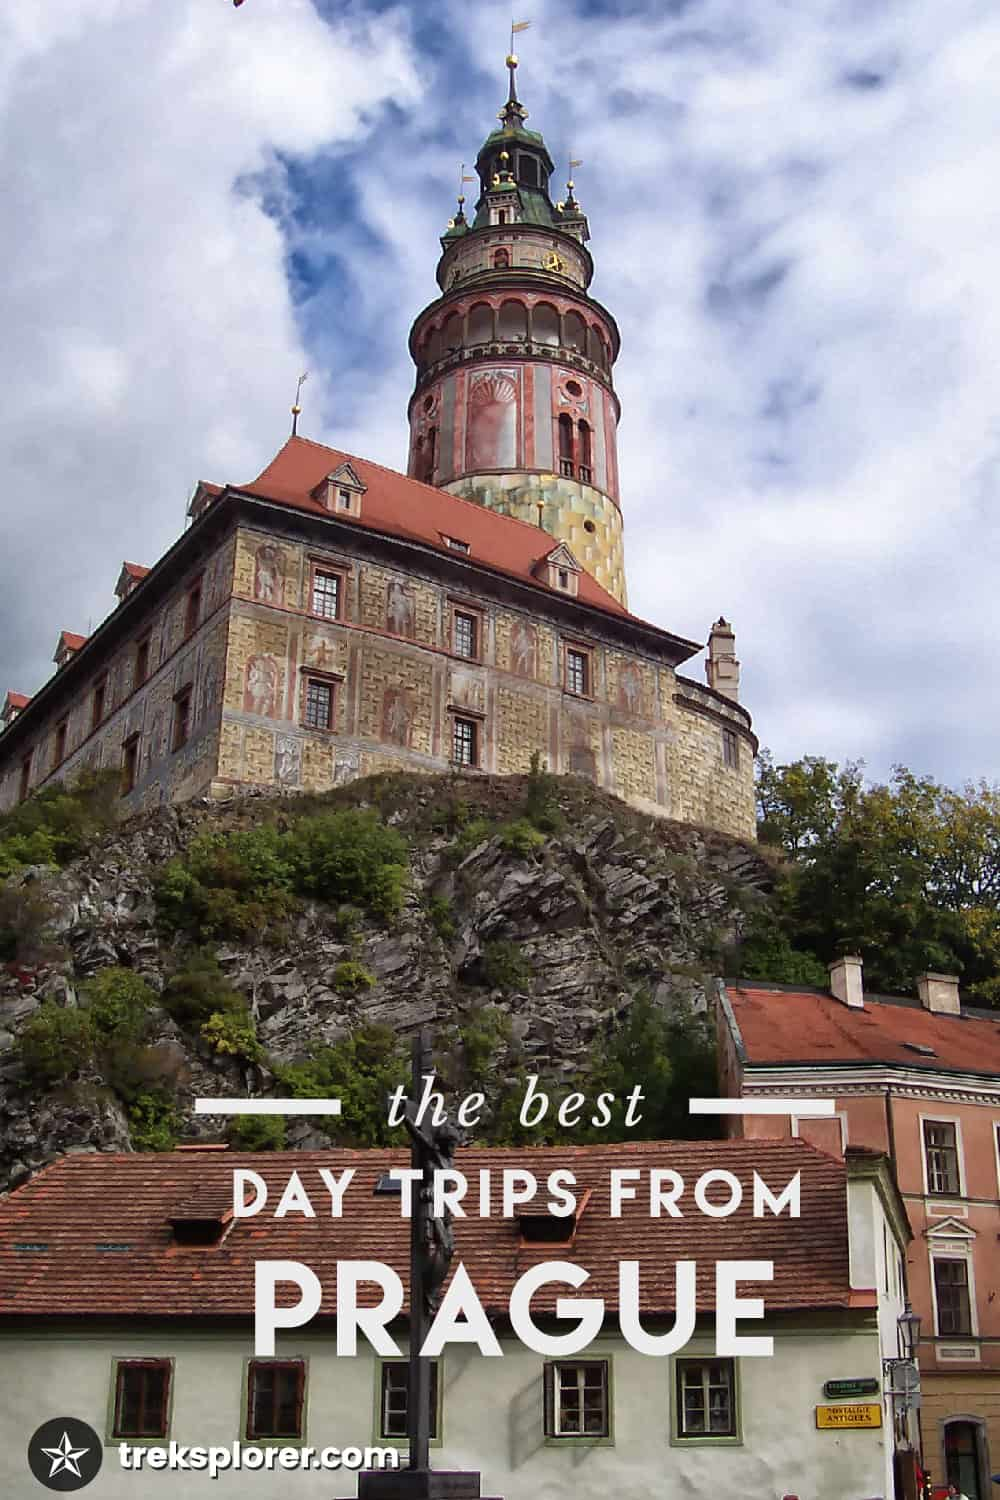 The Best Day Trips from Prague, Czech Republic